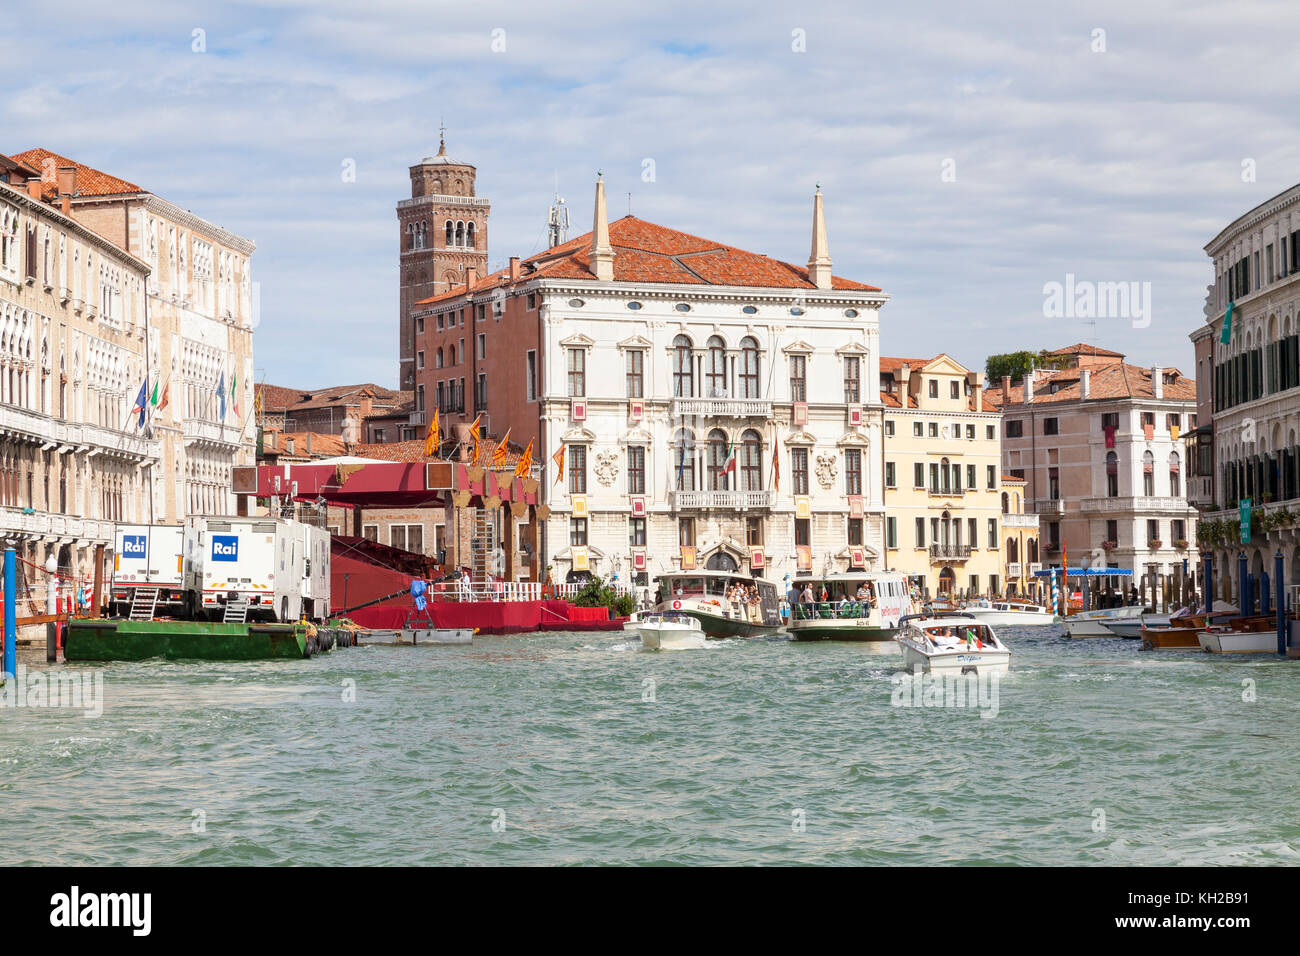 Grand Canal in front of Ca Foscari during preparations for Regata Storica, Venice, Italy with the Rai television - Stock Image